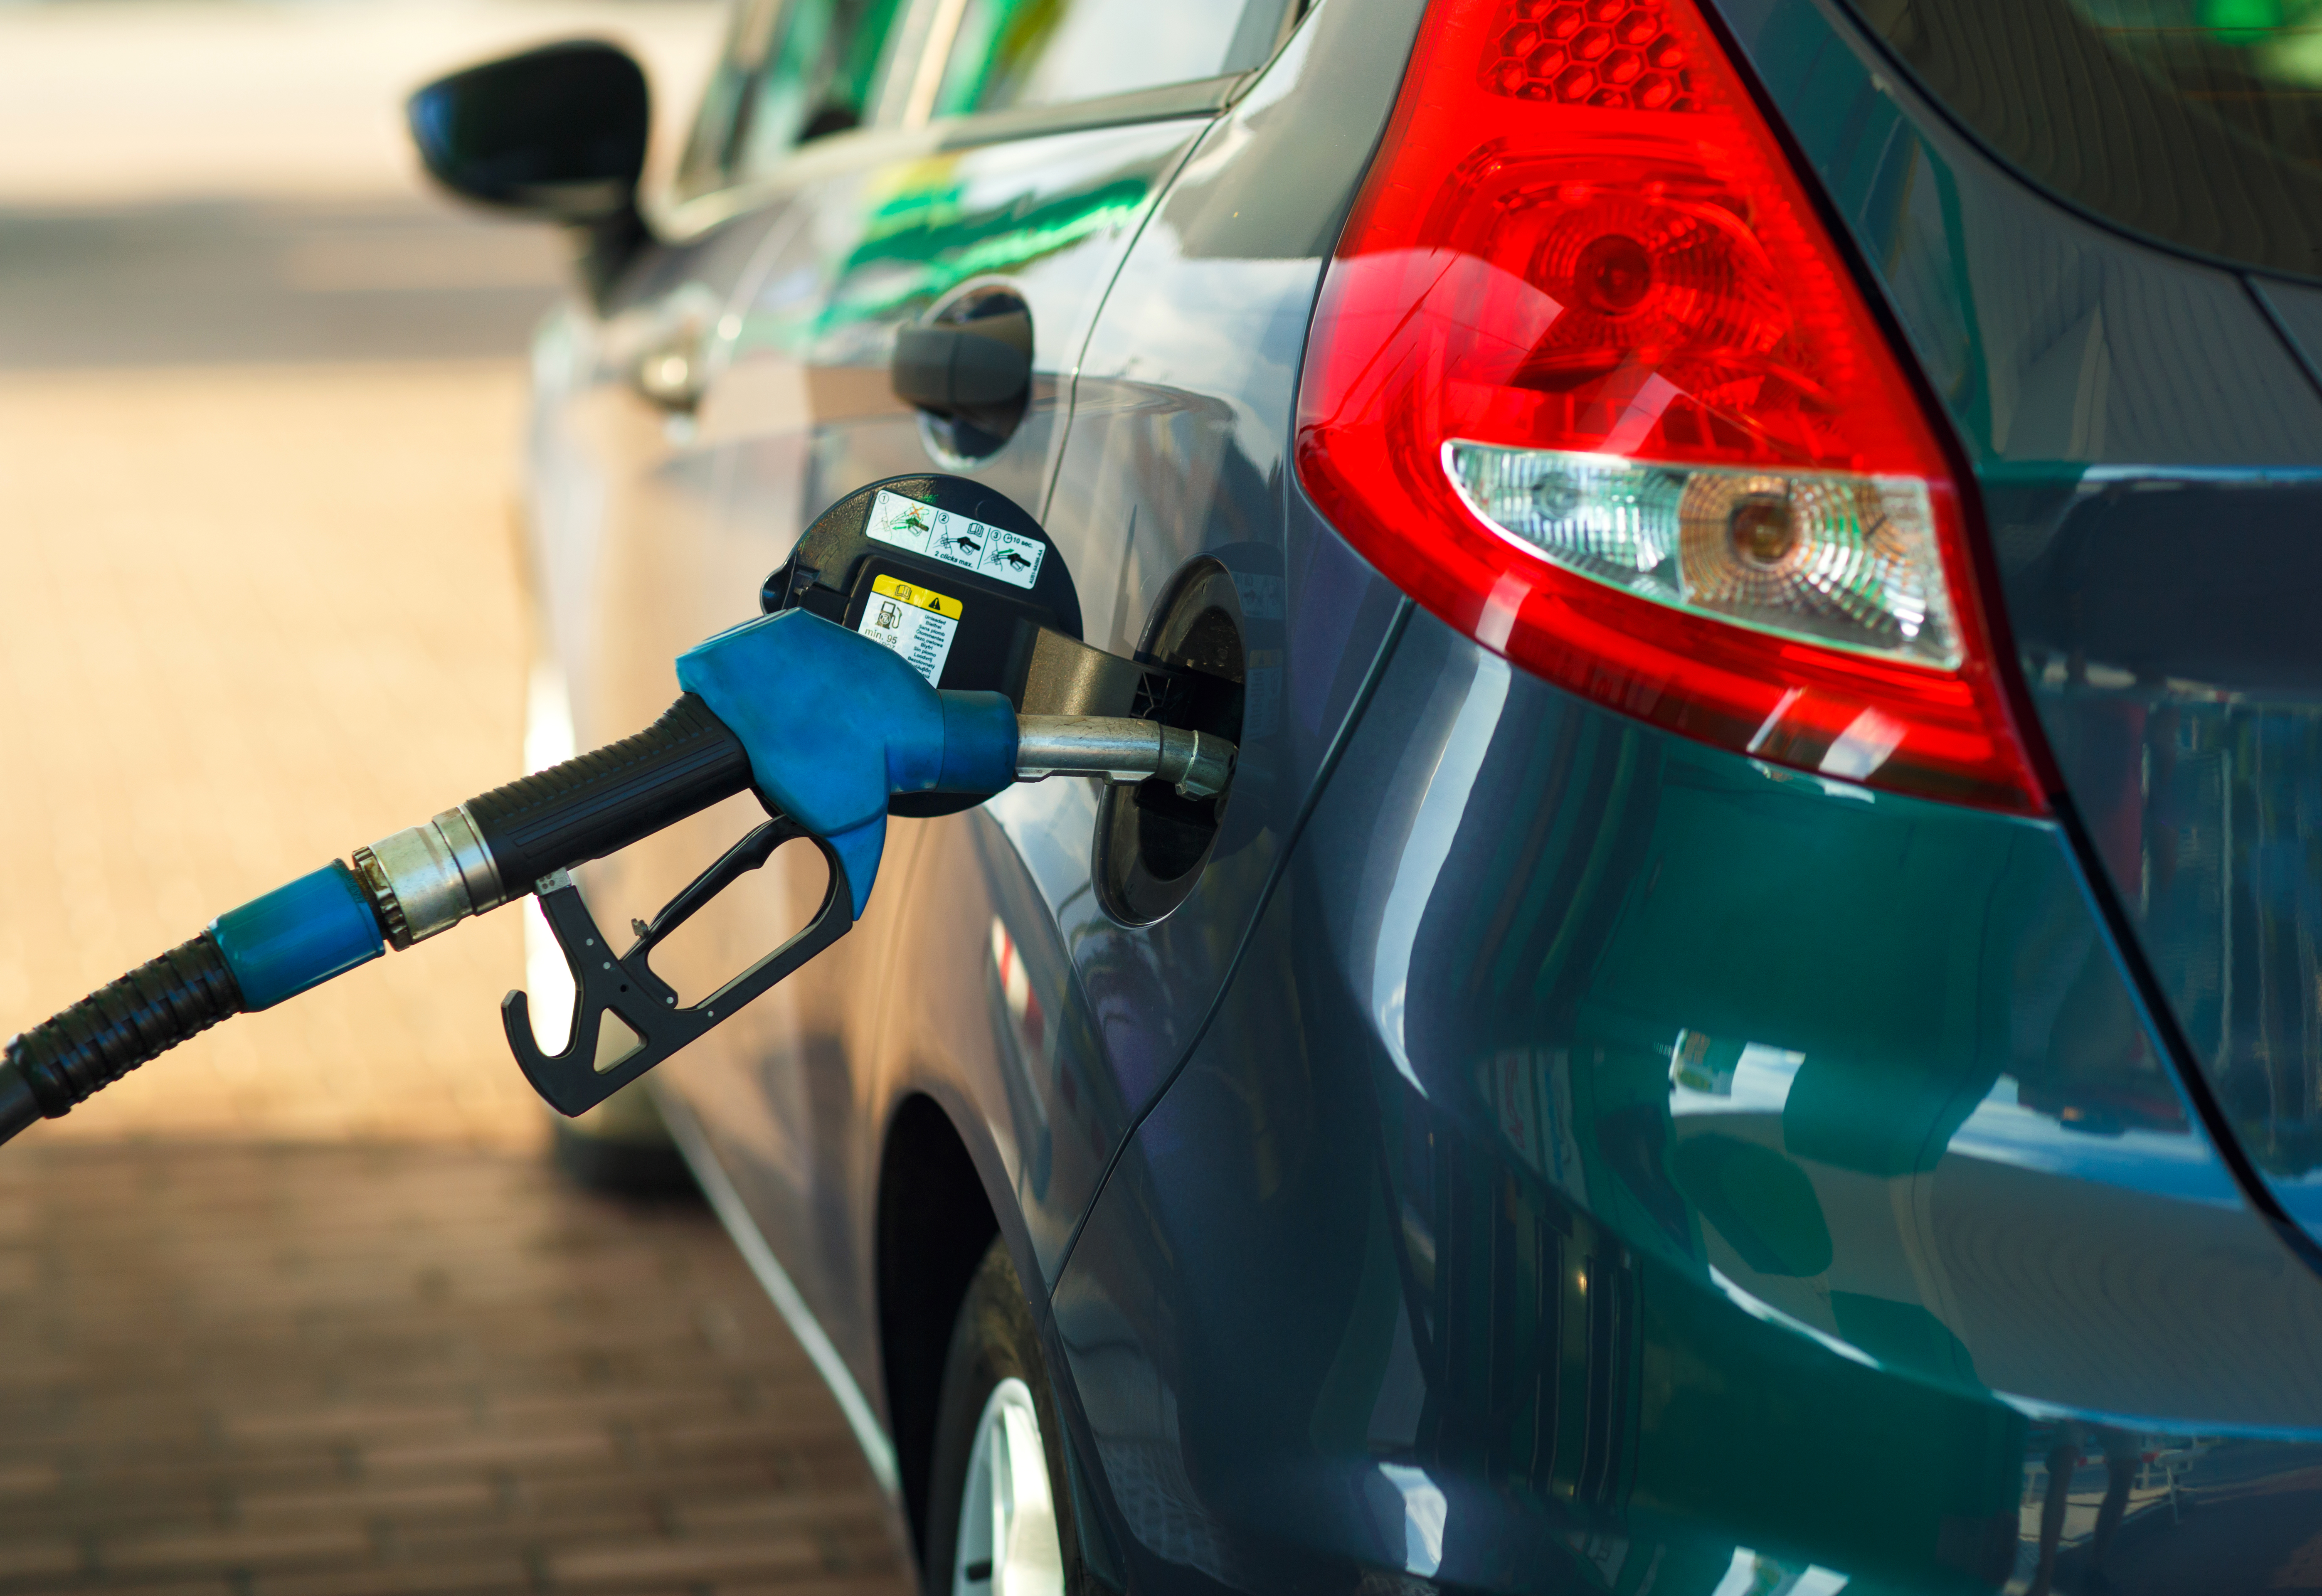 Do-it-yourself: Easy ways to improve your fuel efficiency